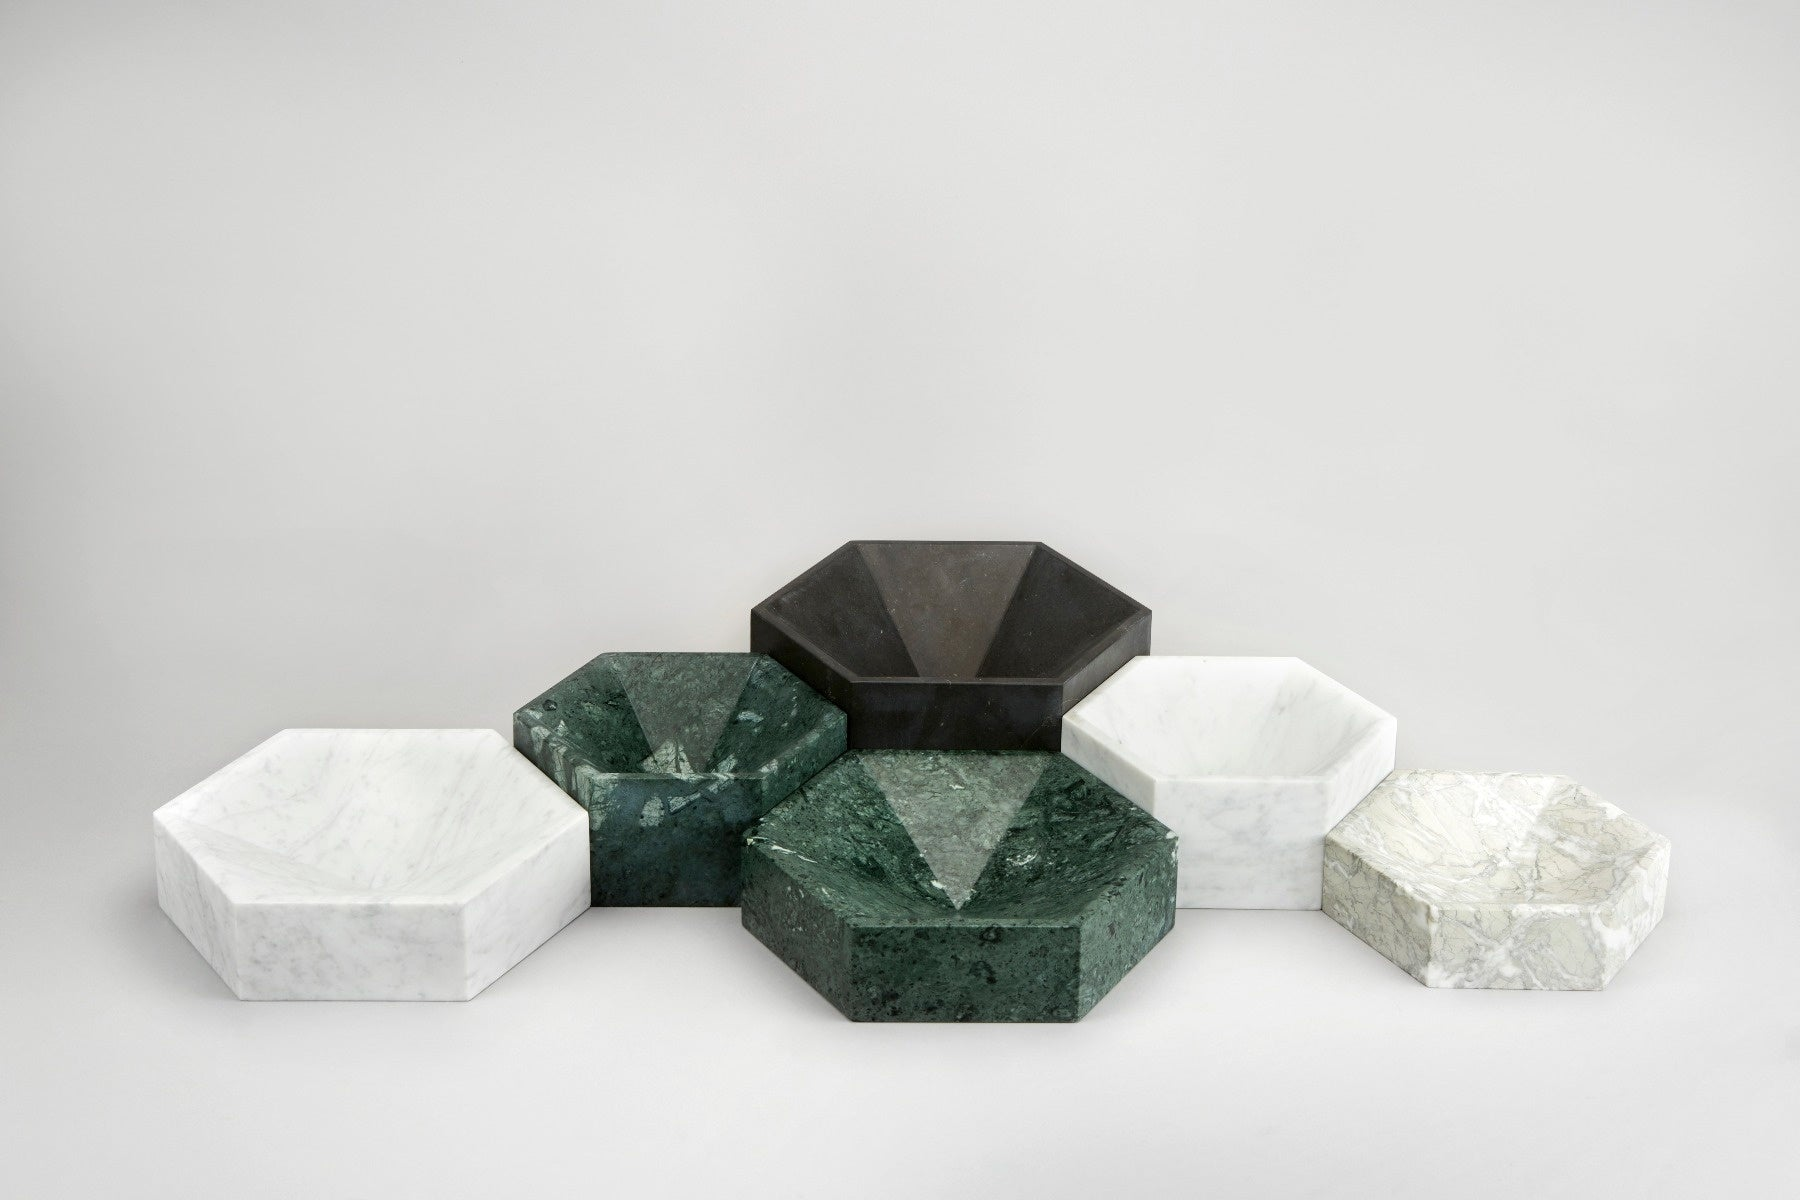 Hexagonal Constellation Bowl Small & Low </br> Verde Antico